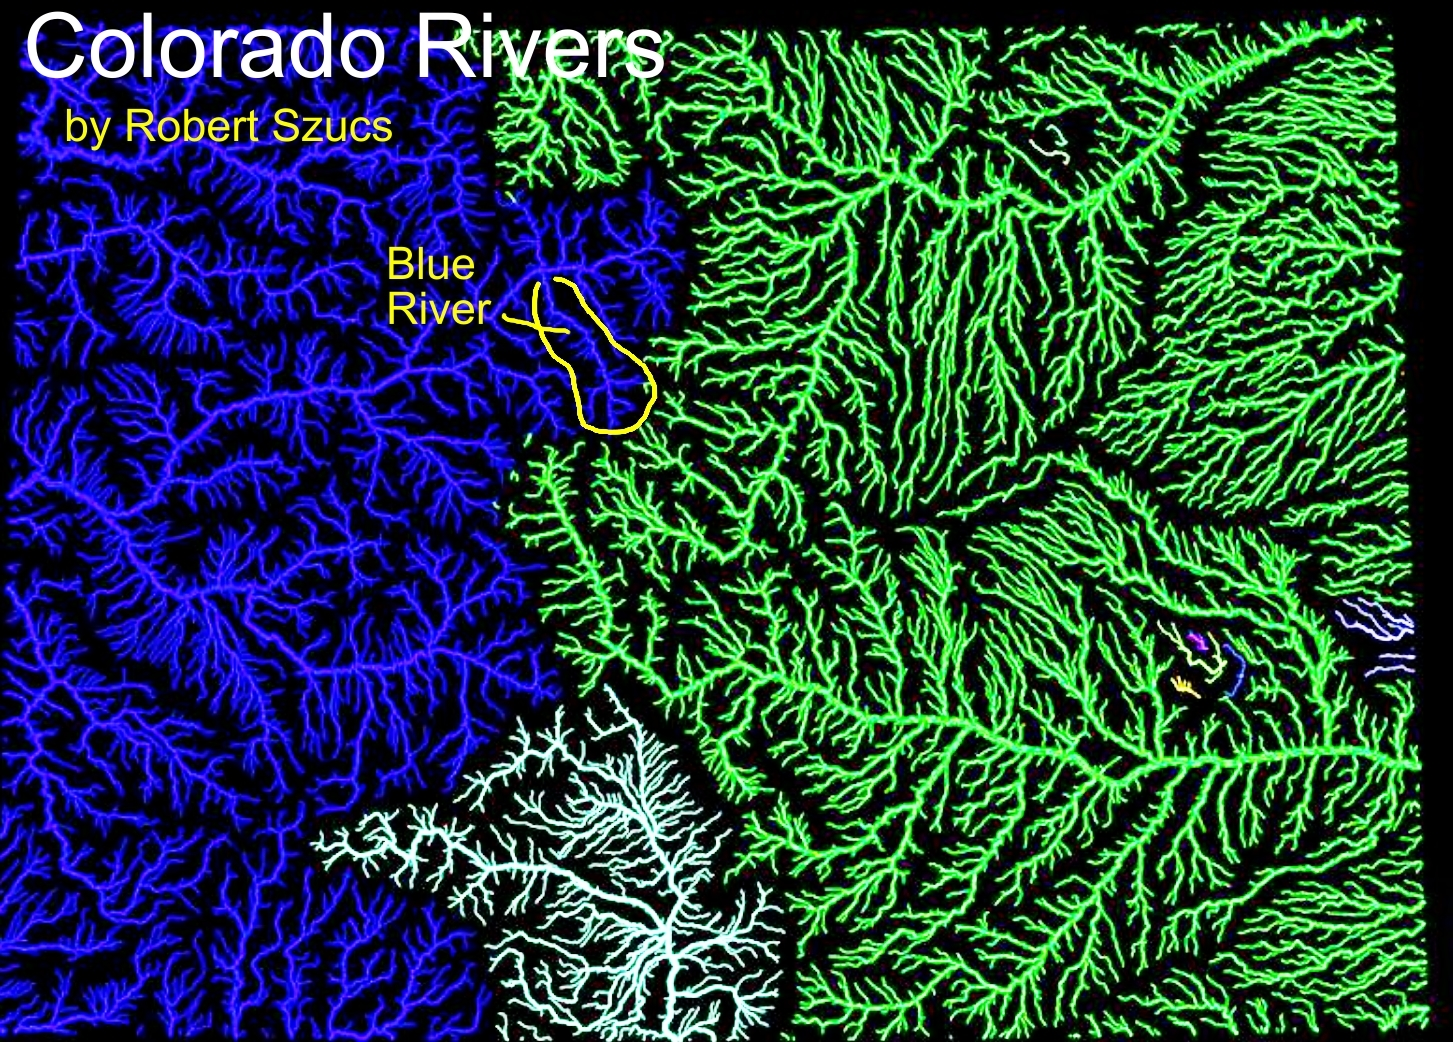 Colorado Rivers